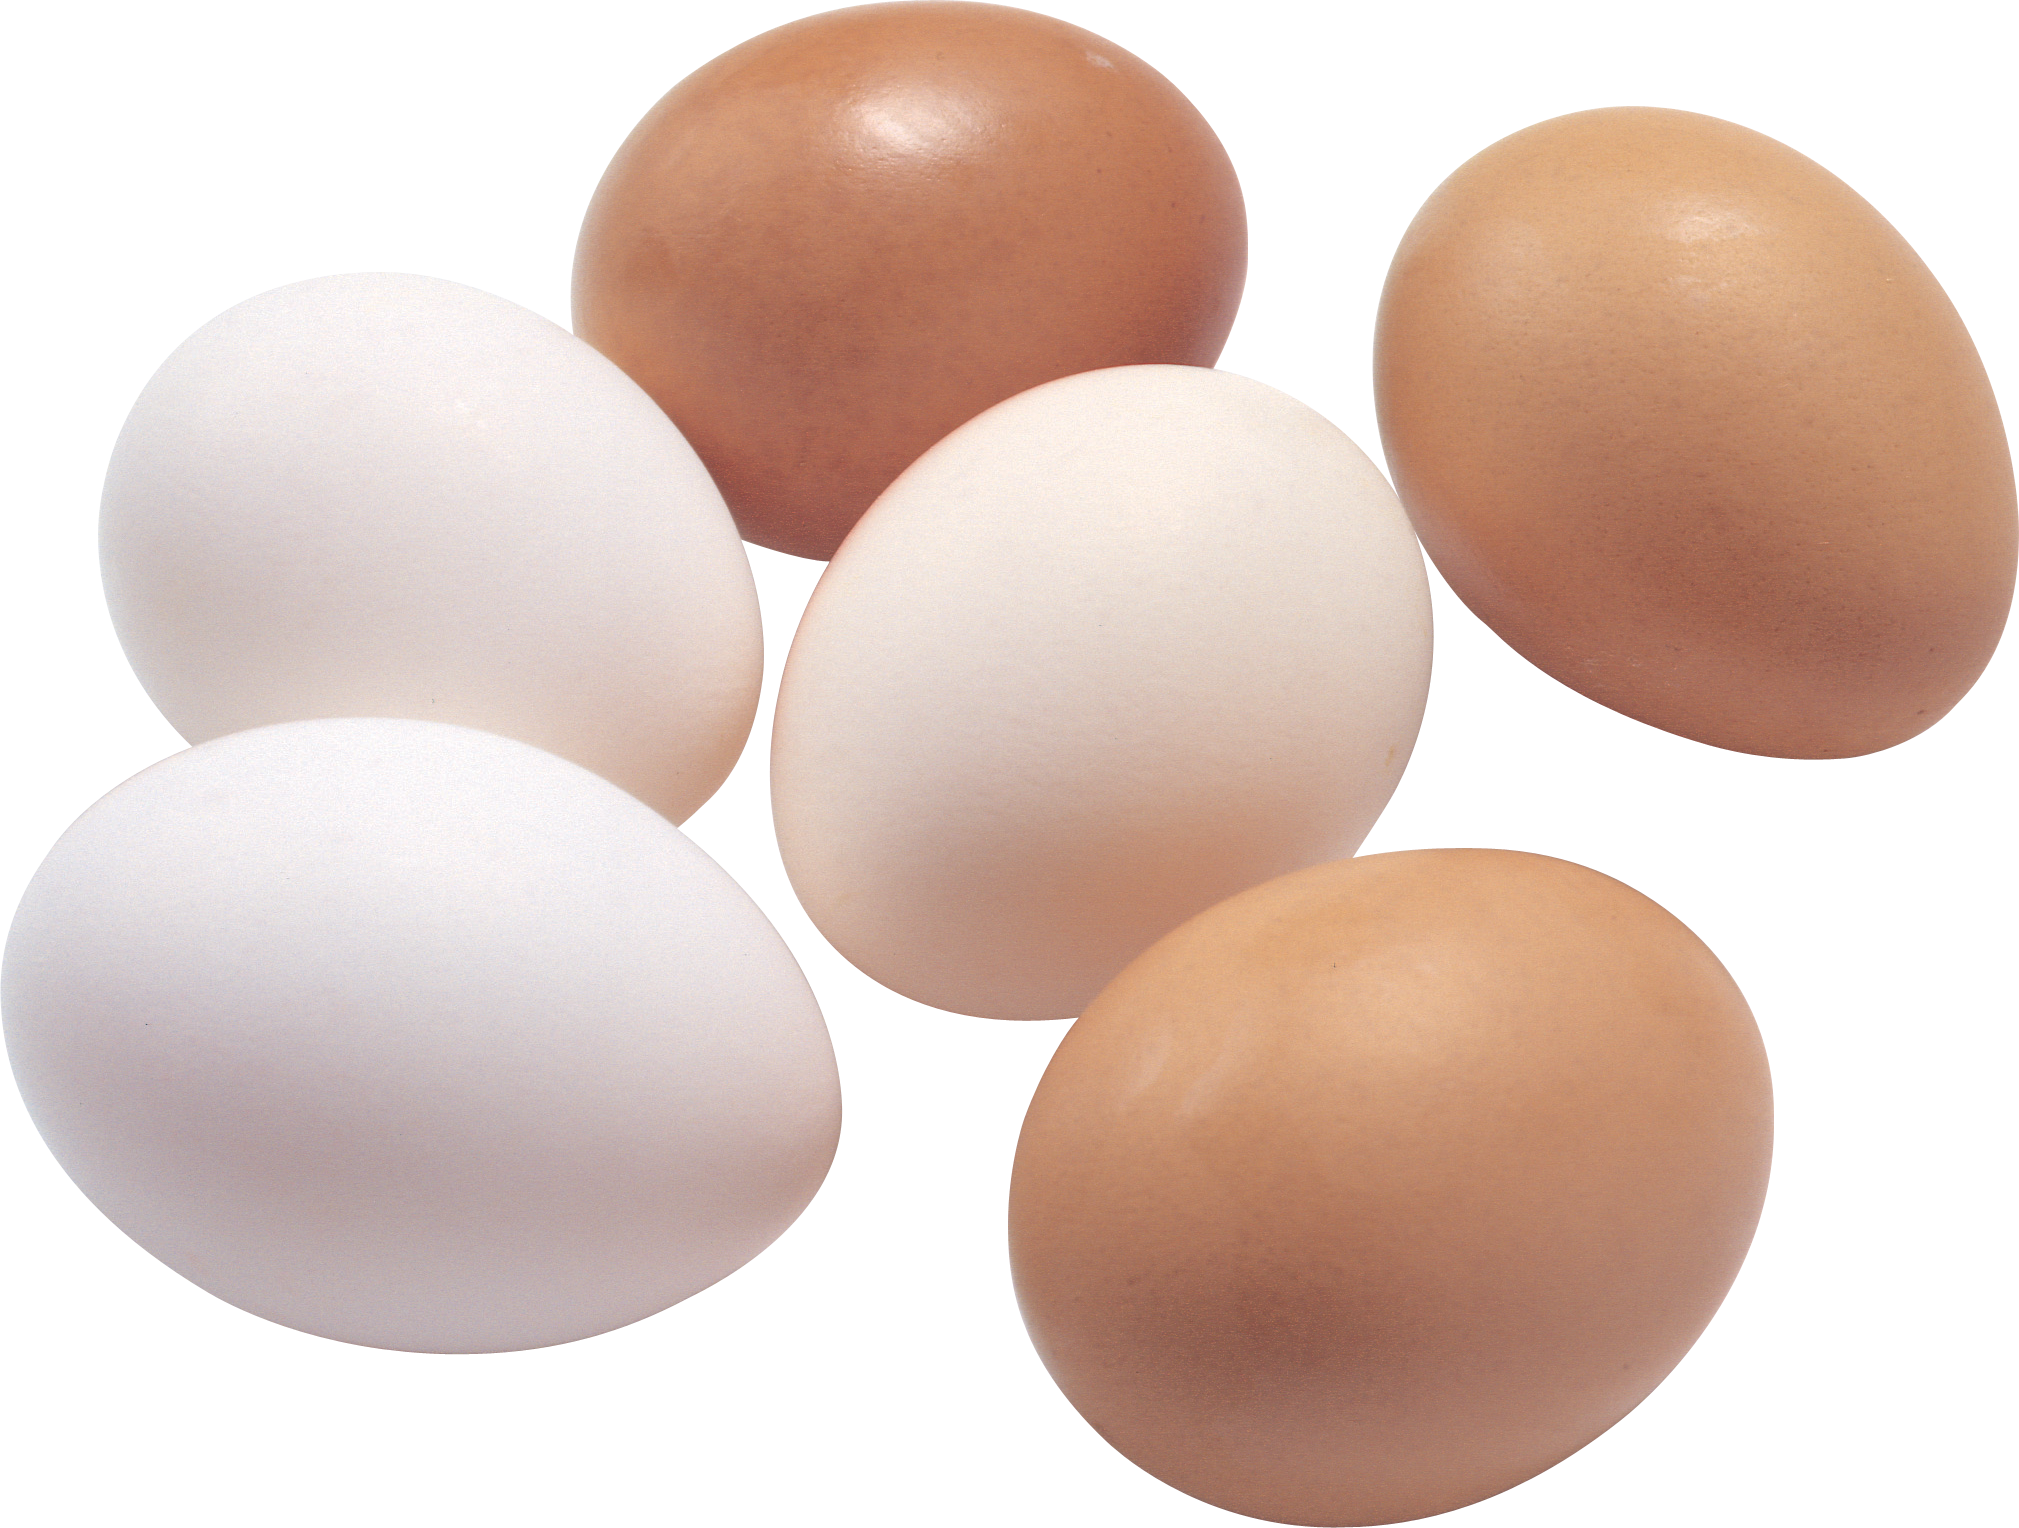 Egg PNG - 18569